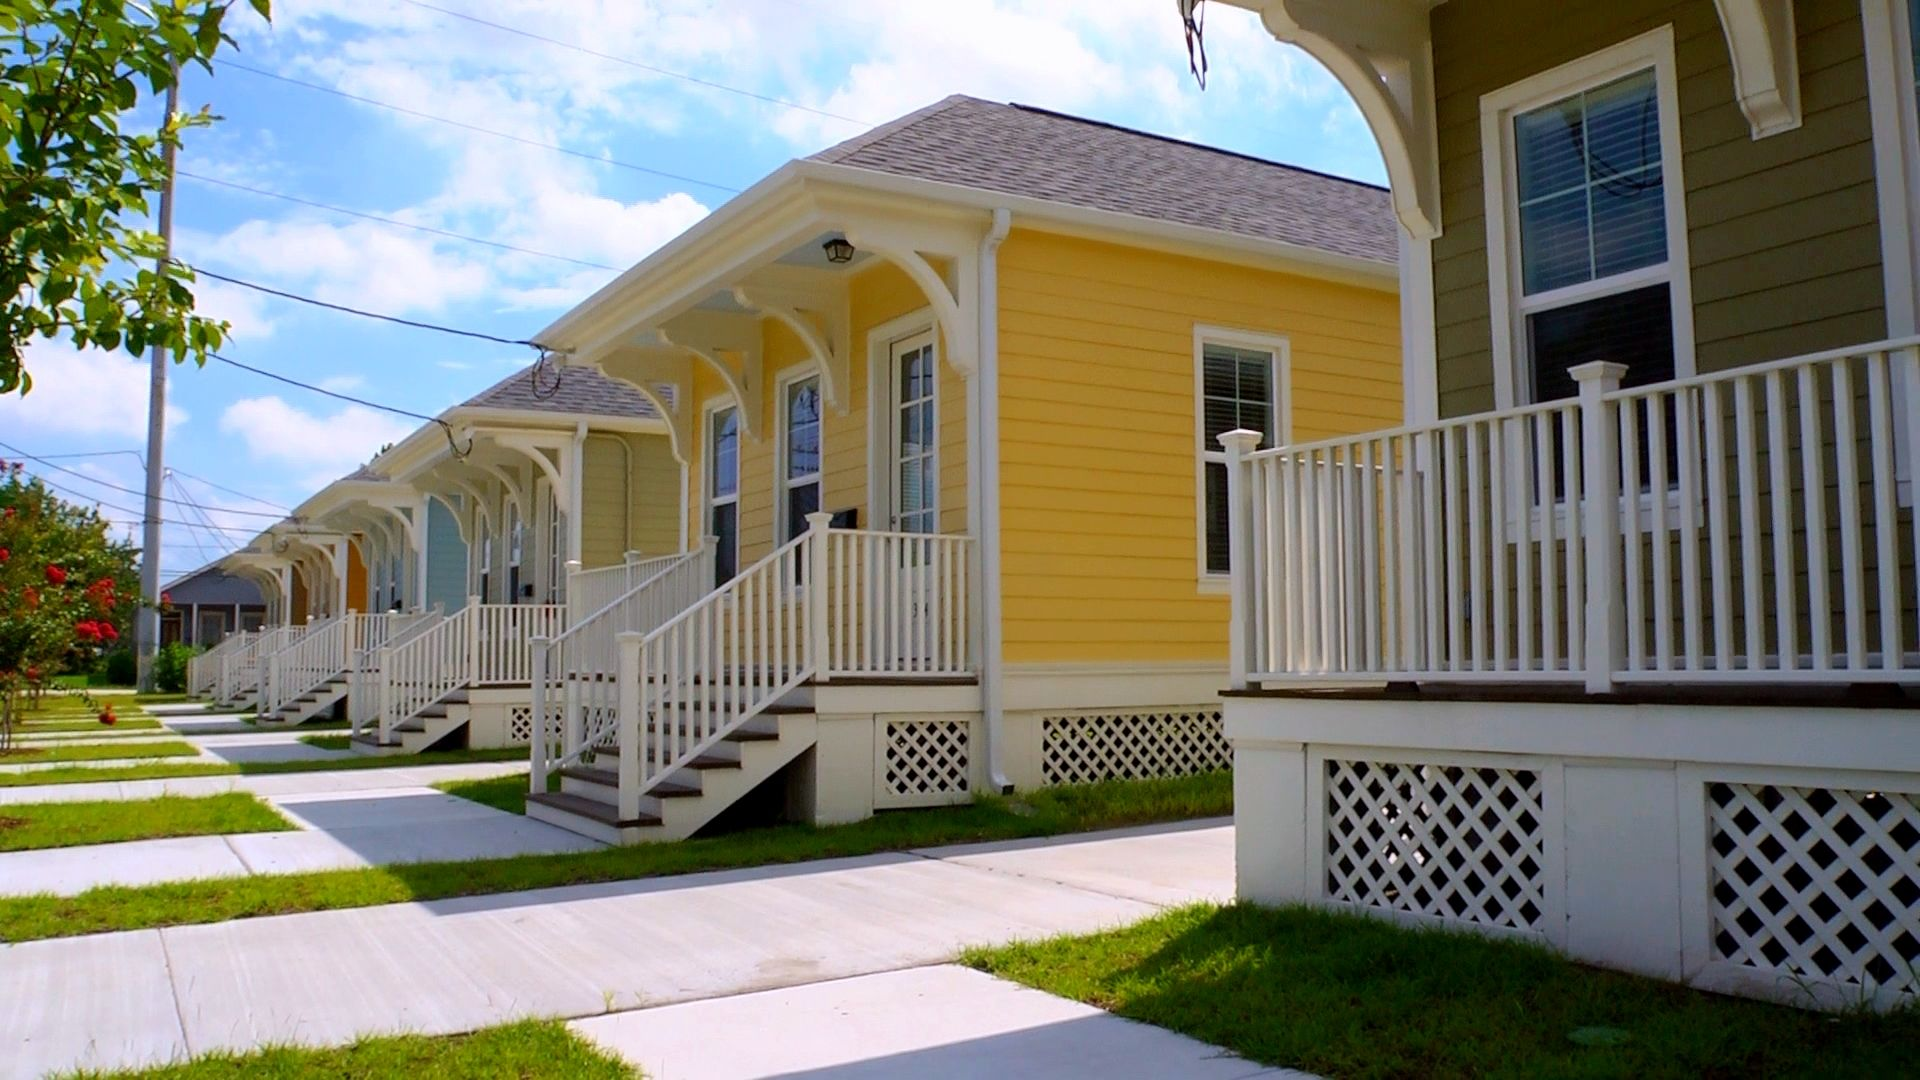 A Neighborhood Of Katrina Cottages In New Orleans La